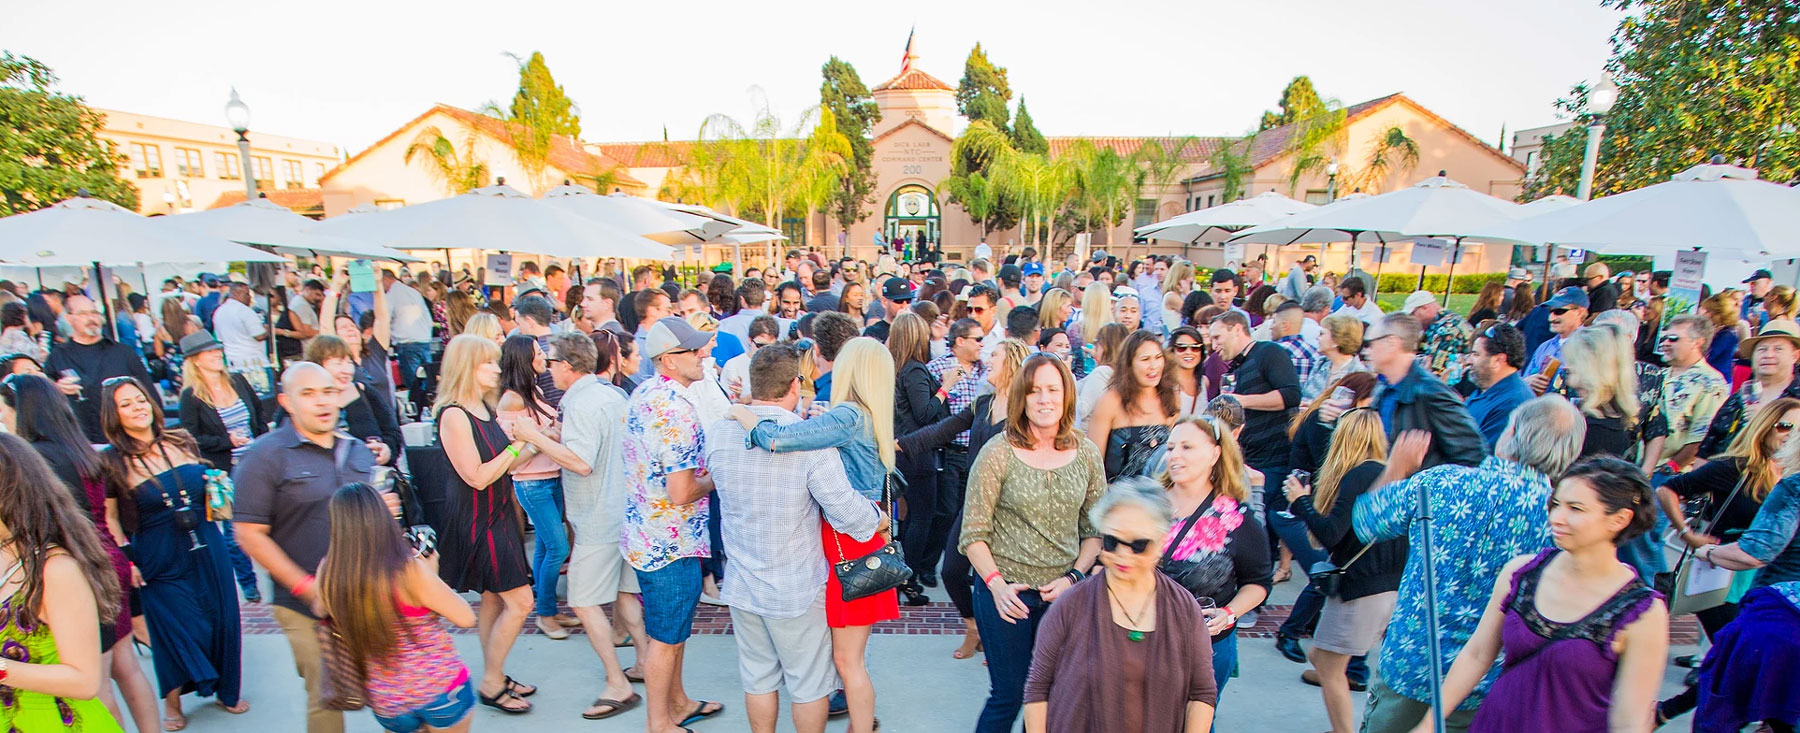 VinDiego Wine & Food Festival - Top Things to Do in San Diego